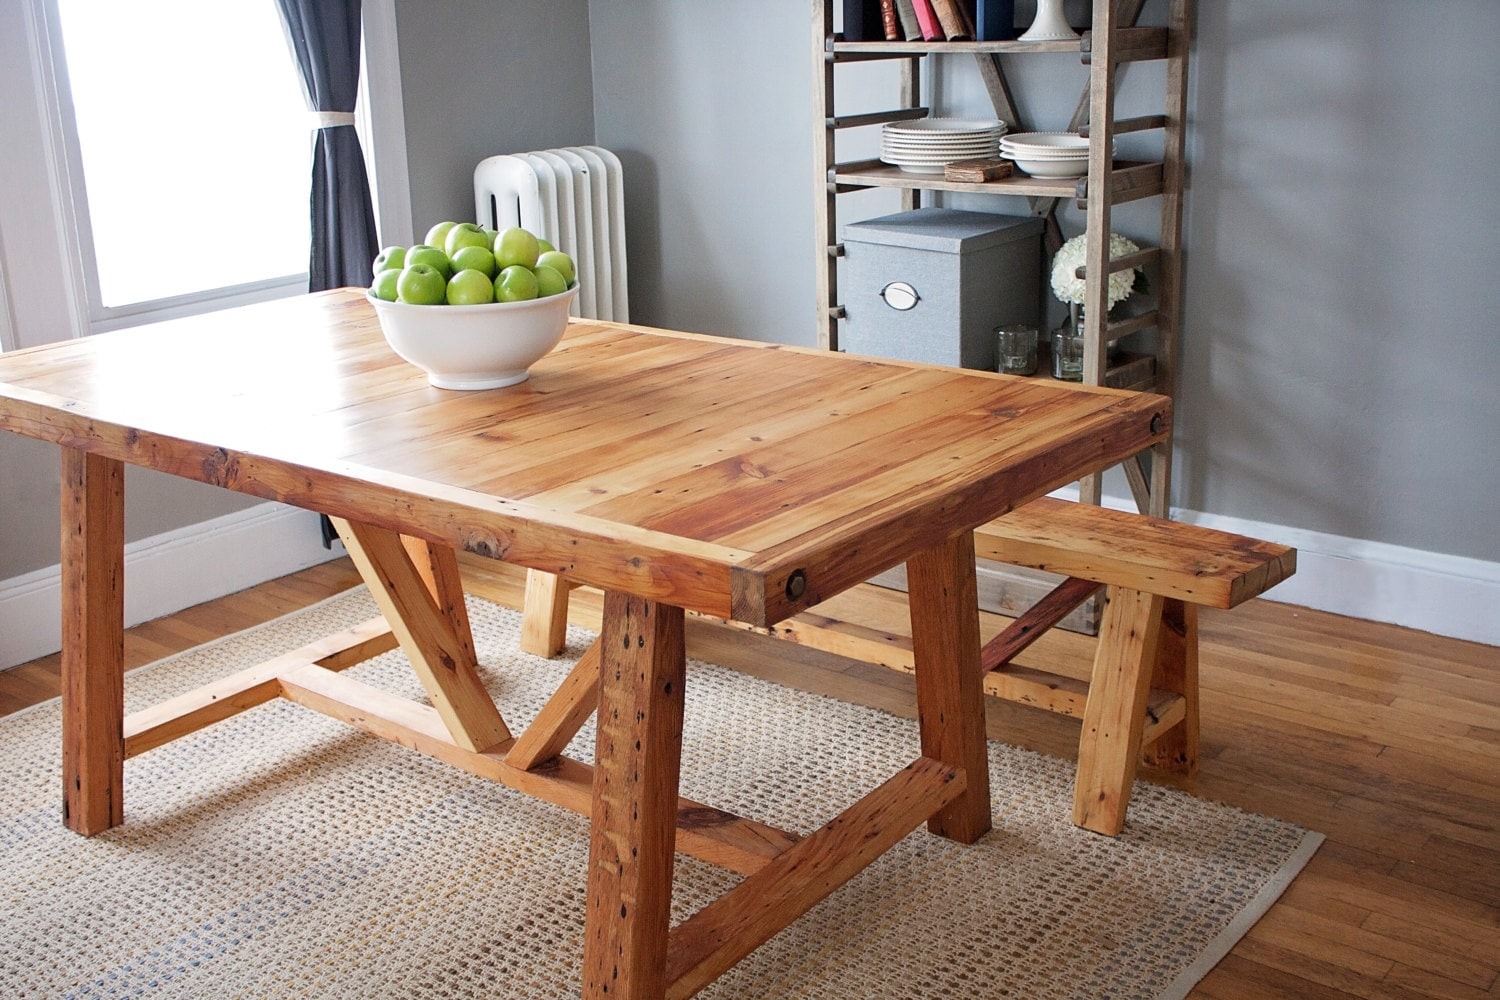 Reclaimed Wood Farmhouse Dining Table And Bench By Uniqueindustry